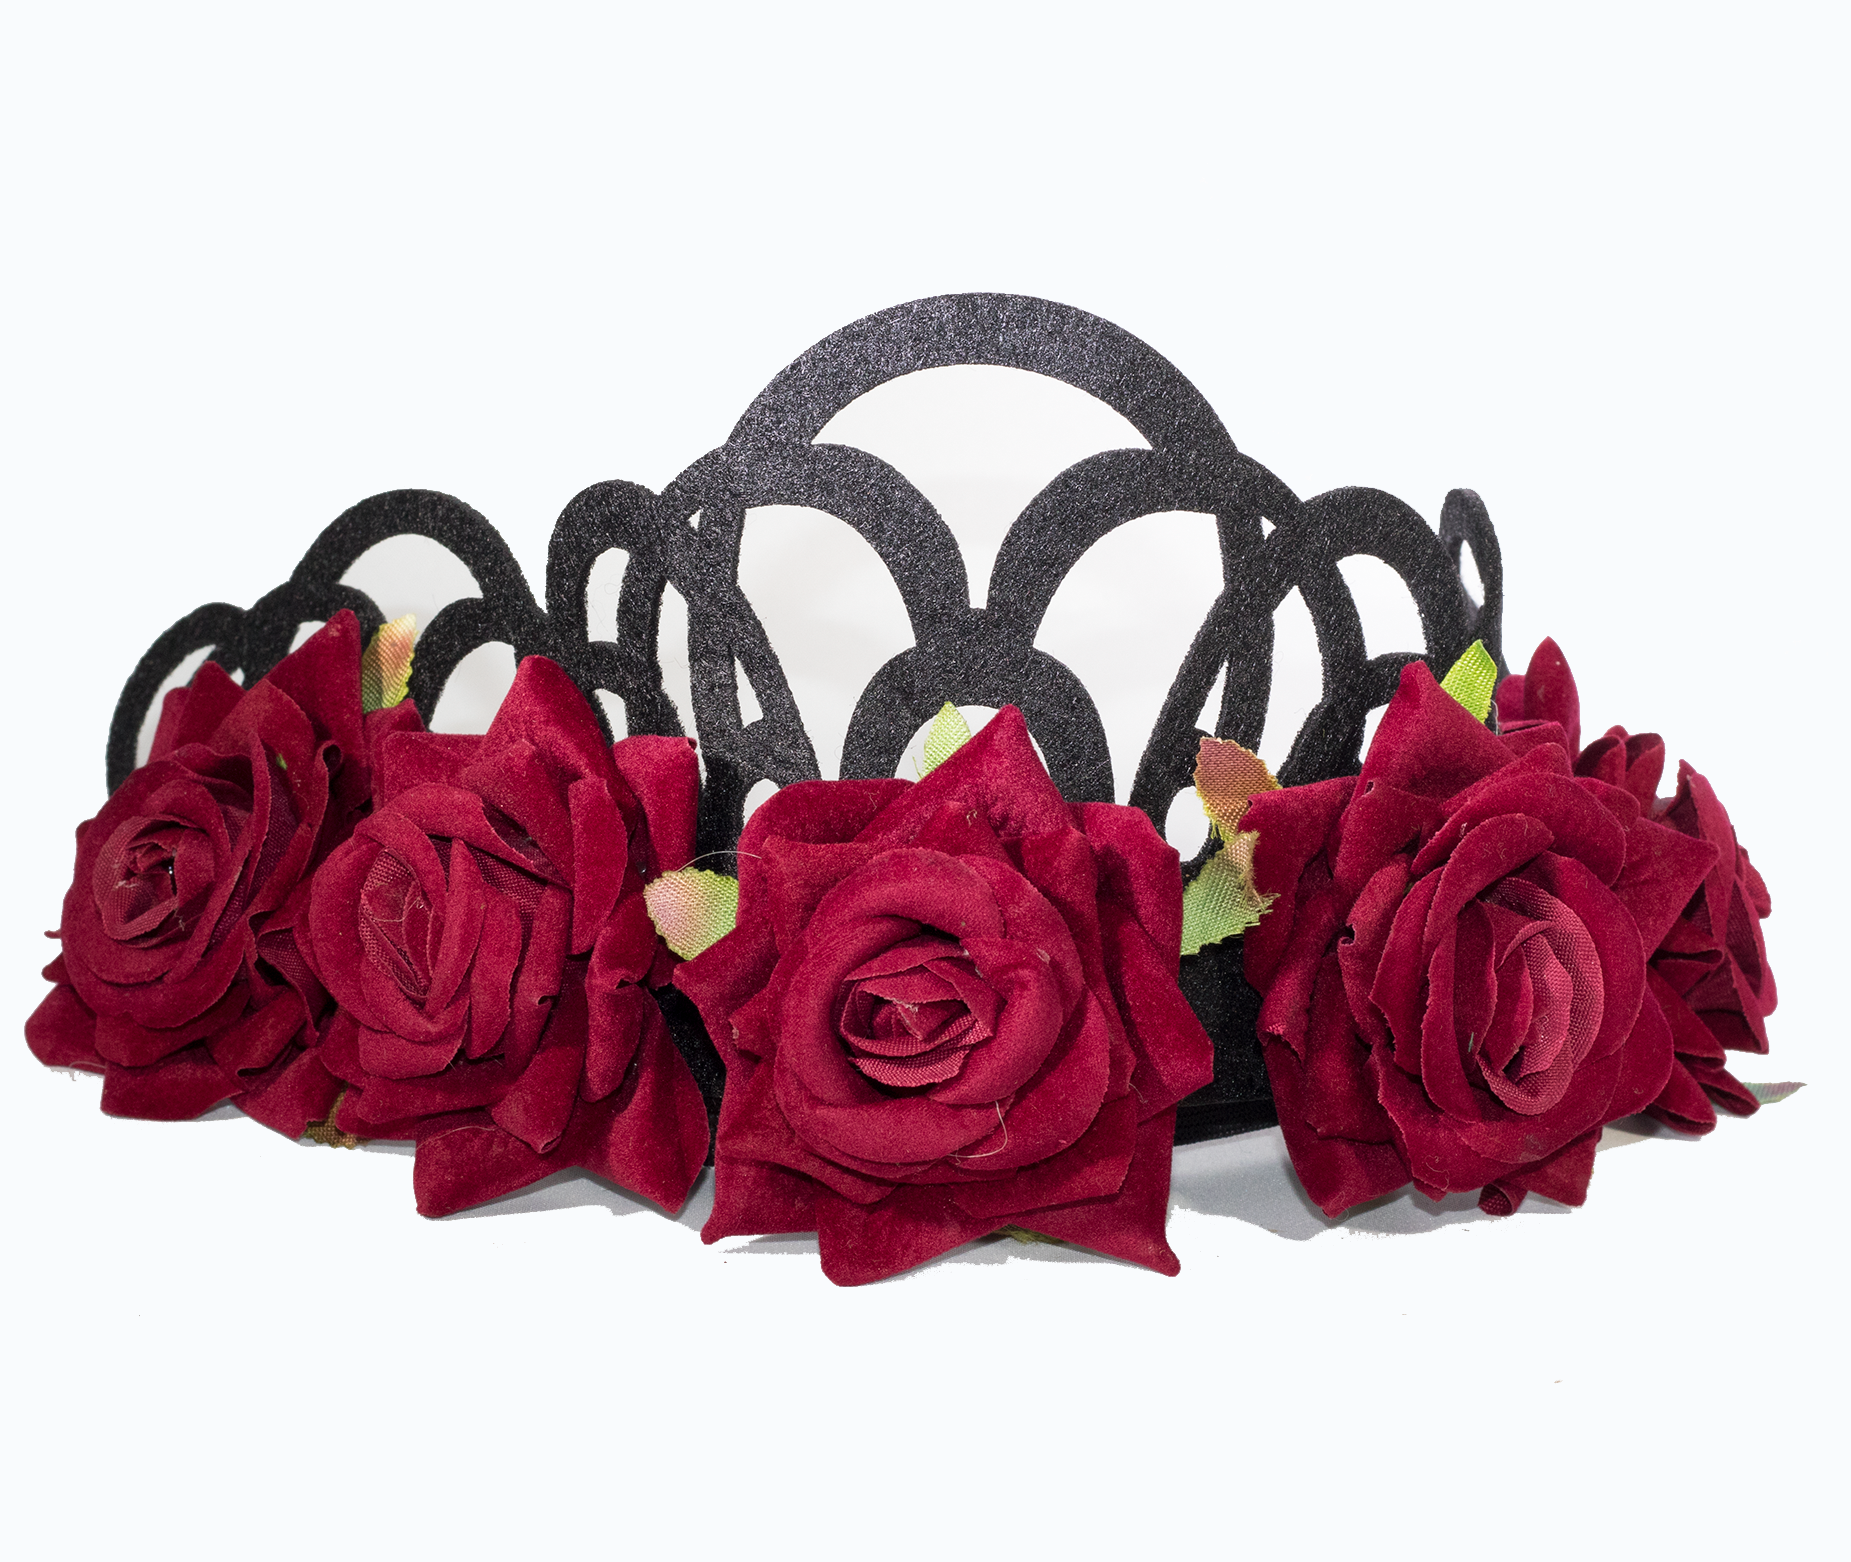 Bed of Roses Headpiece - filthy-rich-vision